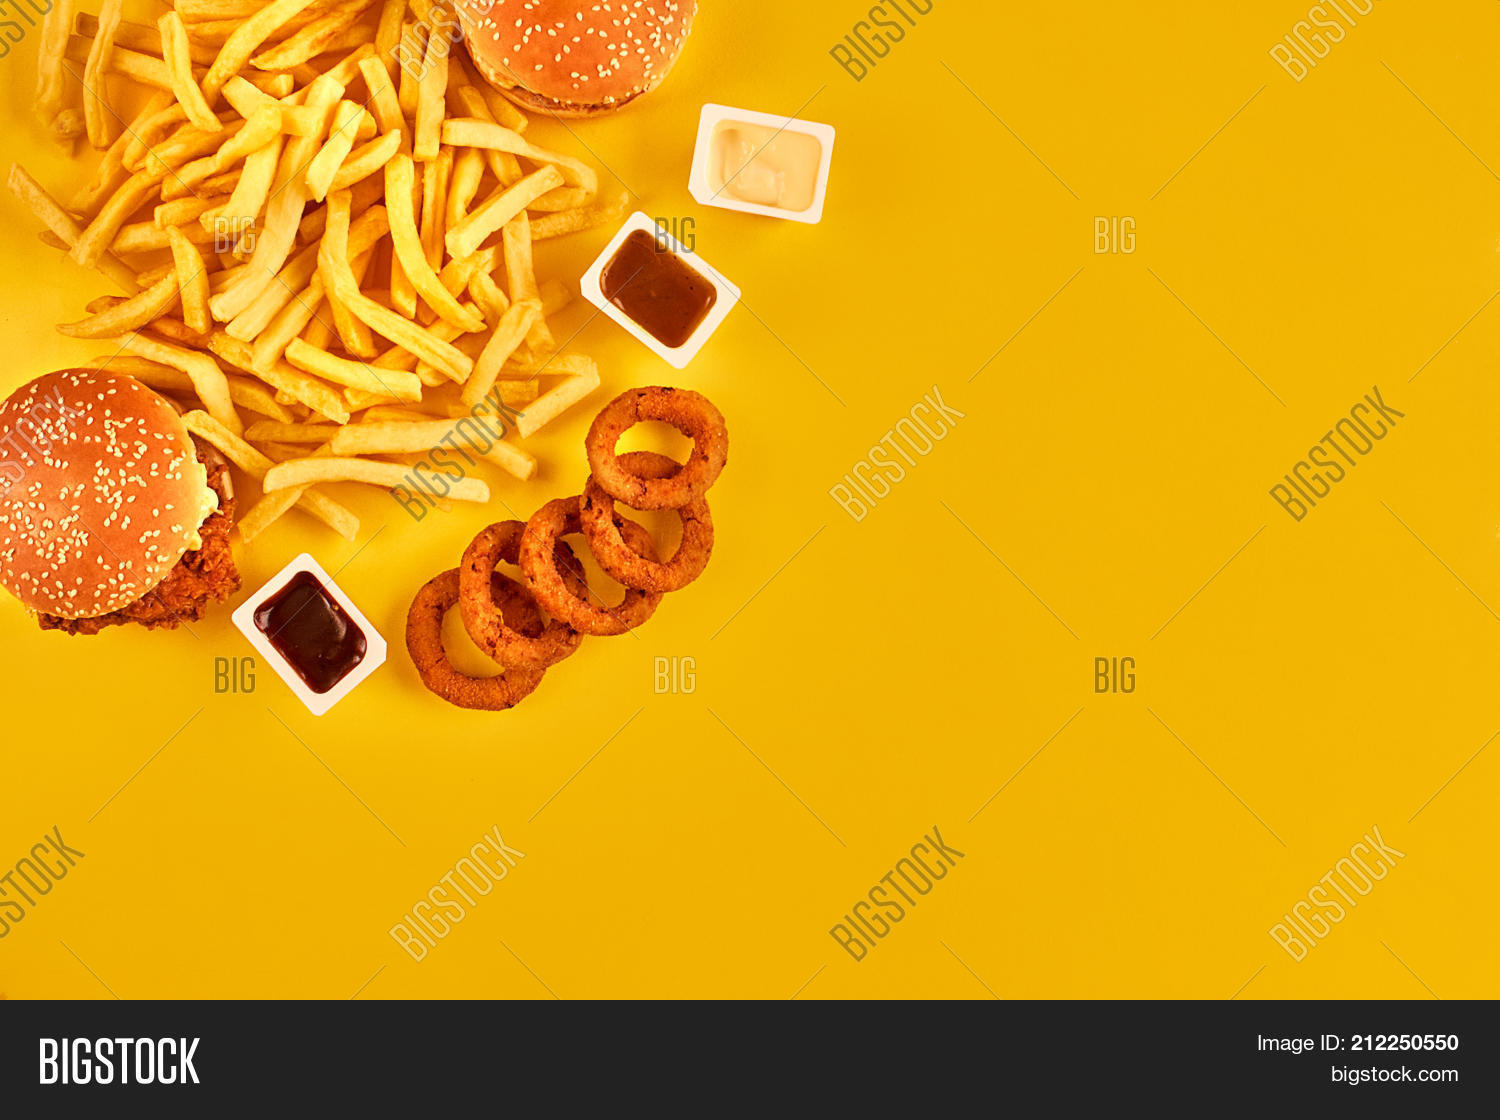 Fast Food Concept Image Photo Free Trial Bigstock